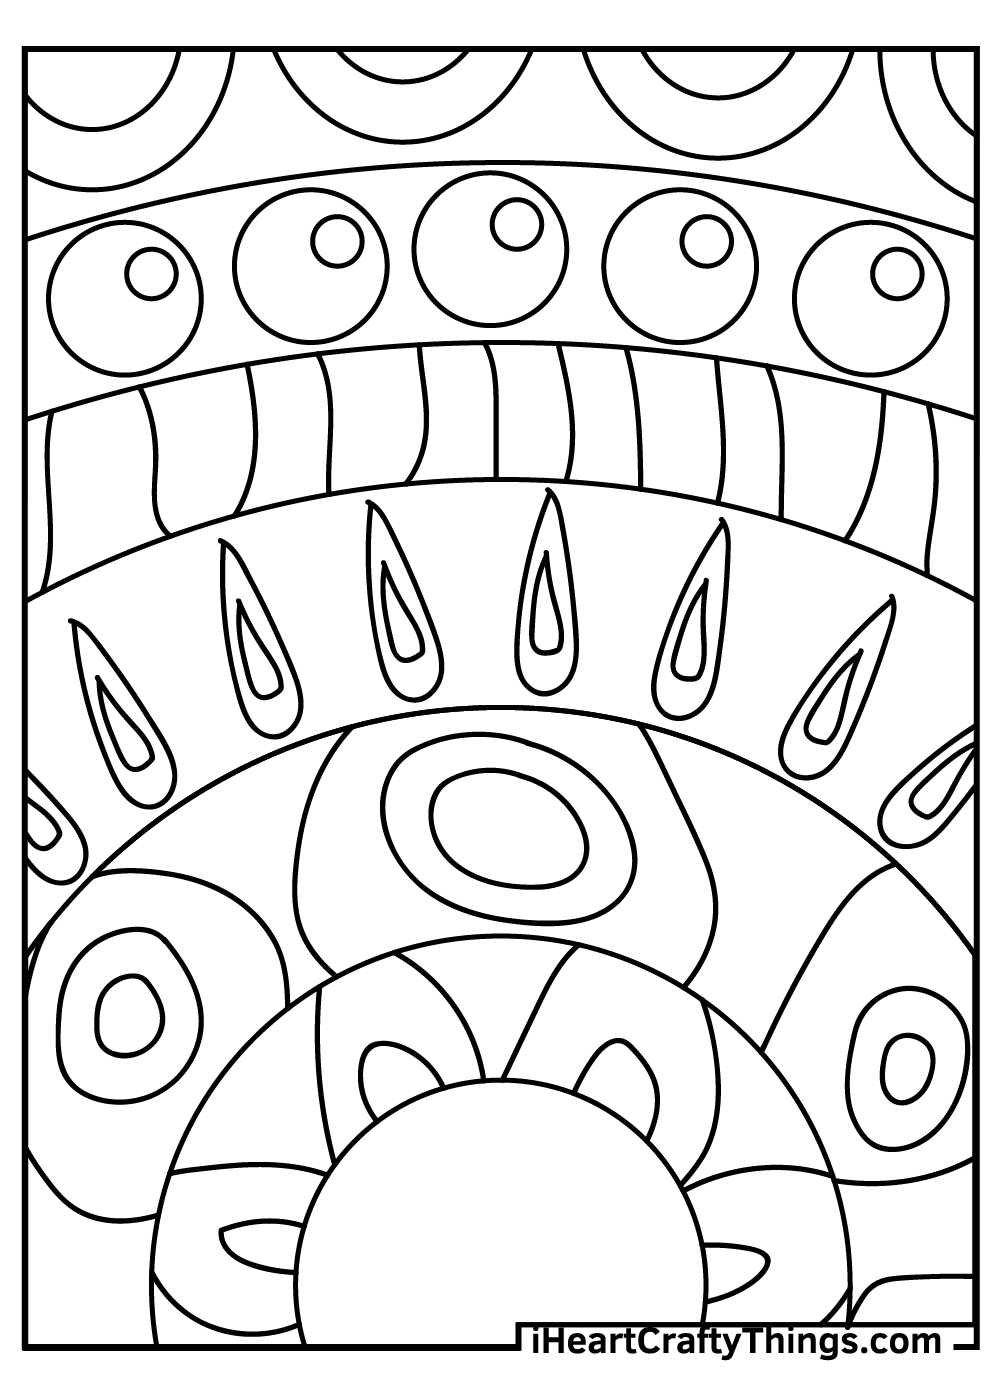 creative abstract coloring pages free download